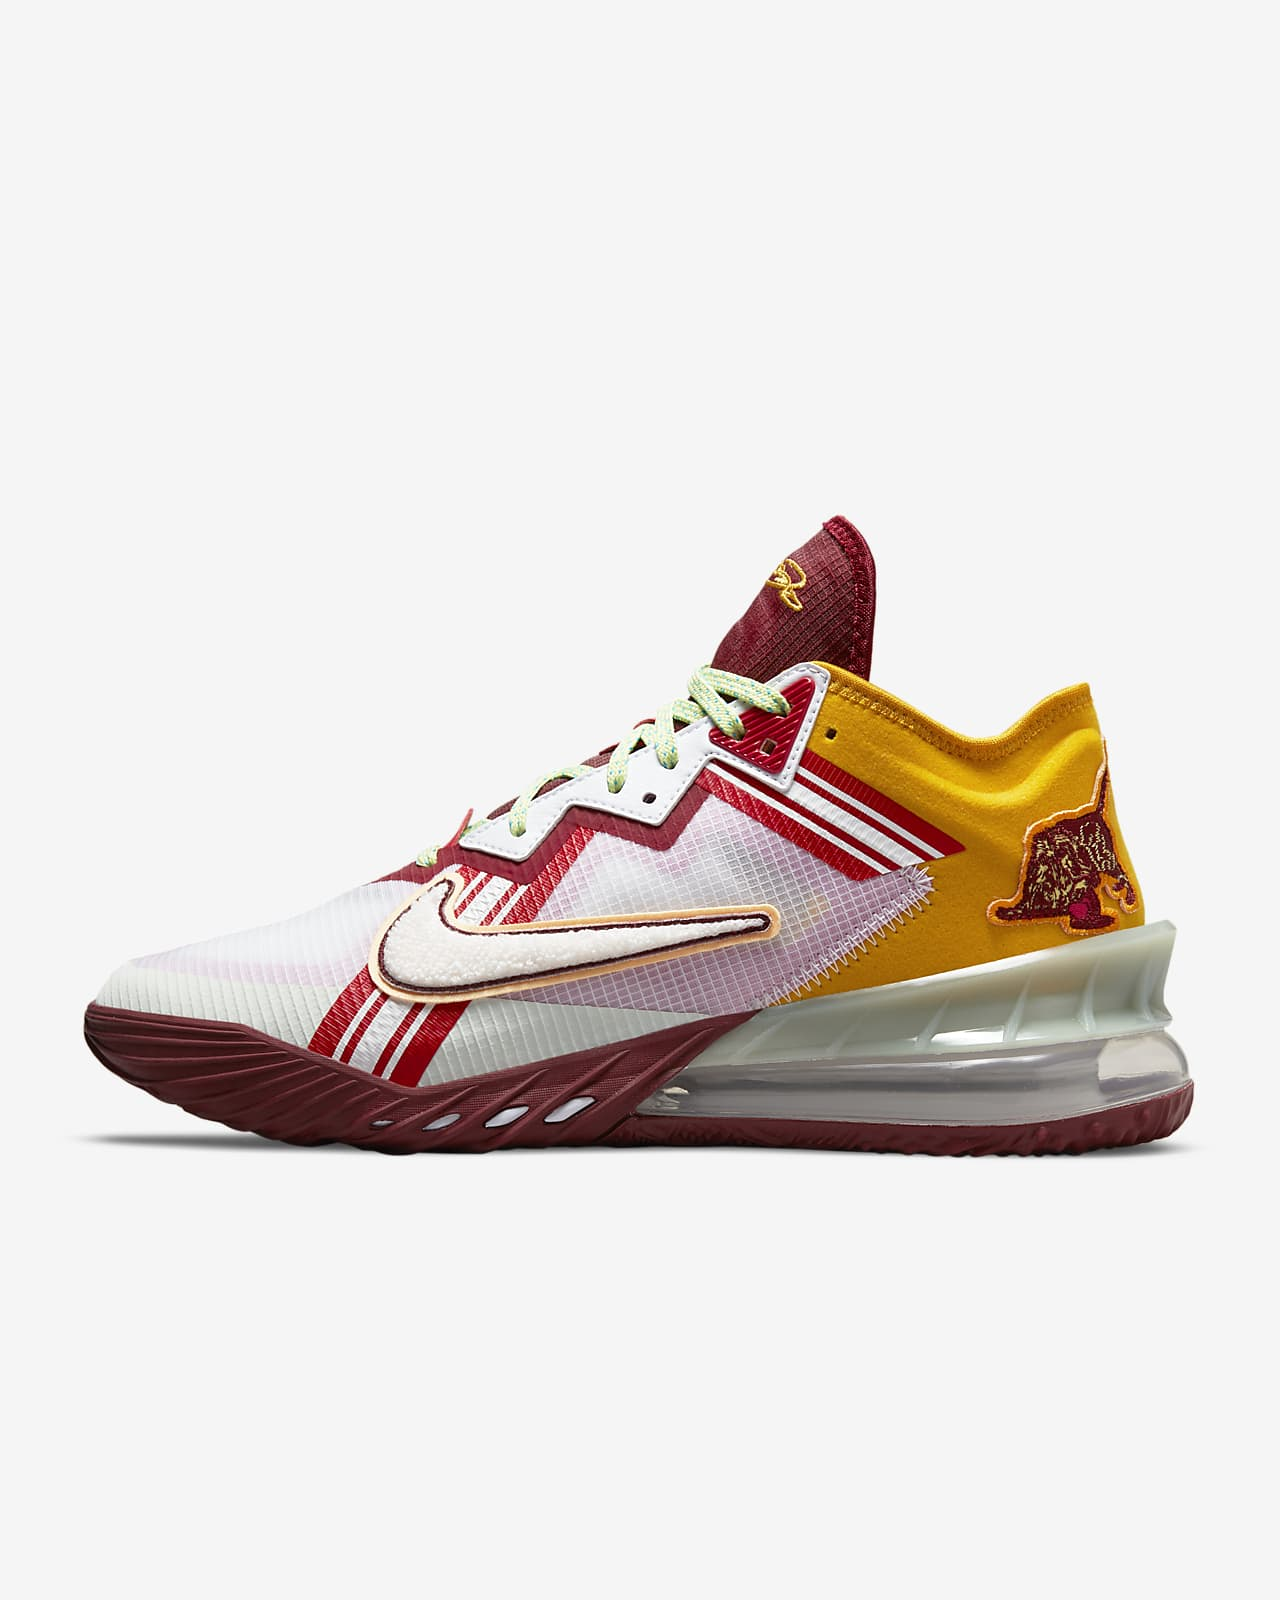 Chaussure de basketball LeBron 18 Low x Mimi Plange « Higher Learning »